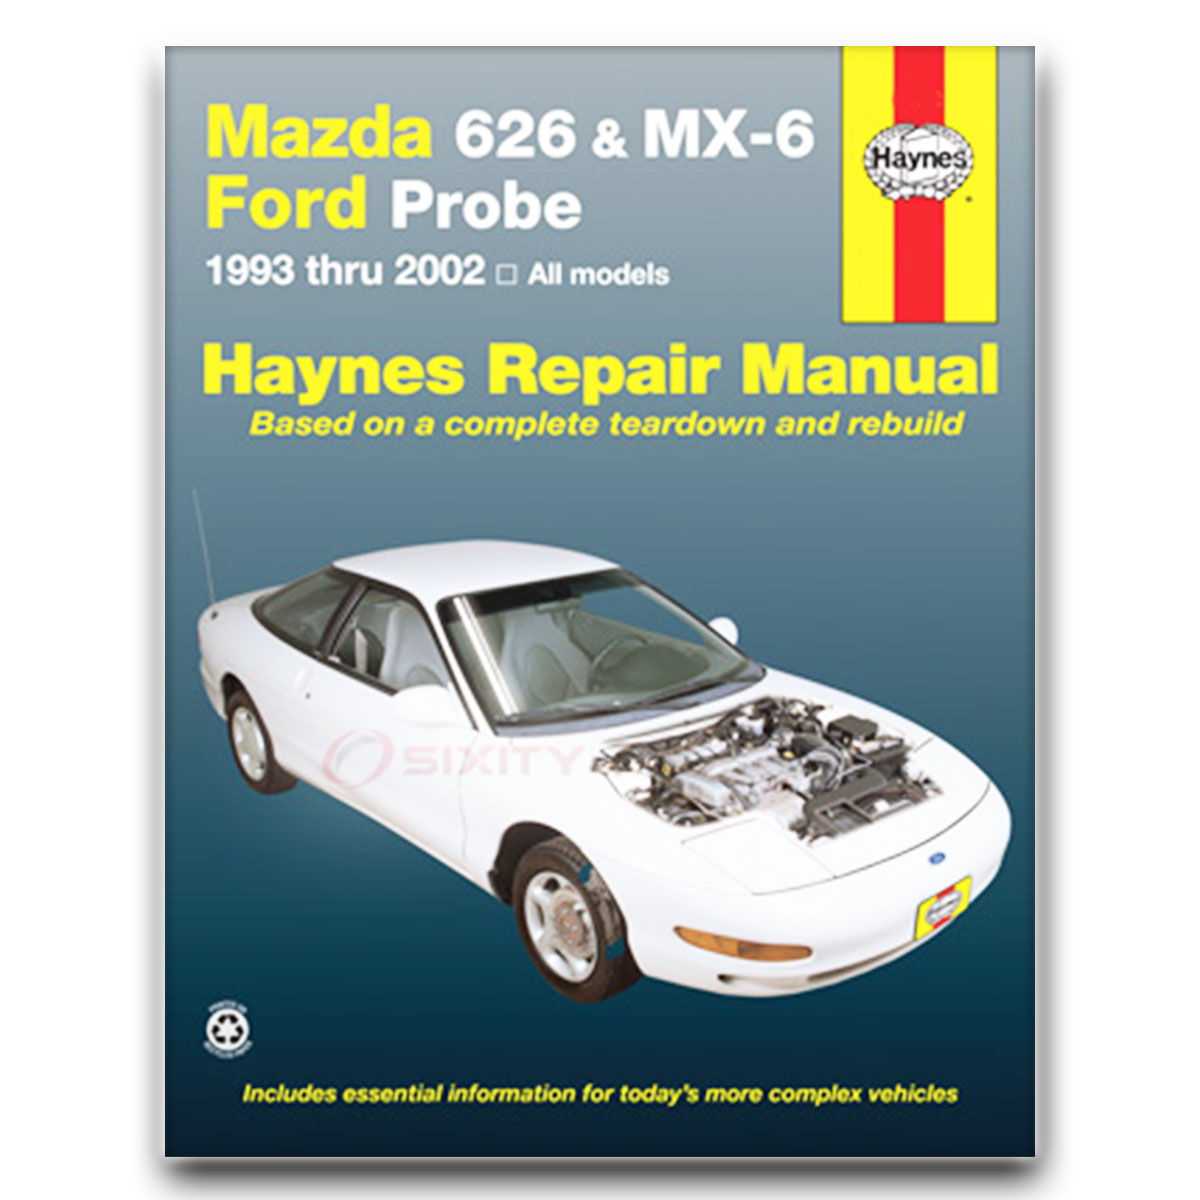 2002 mazda 626 repair manual free owners manual u2022 rh wordworksbysea com